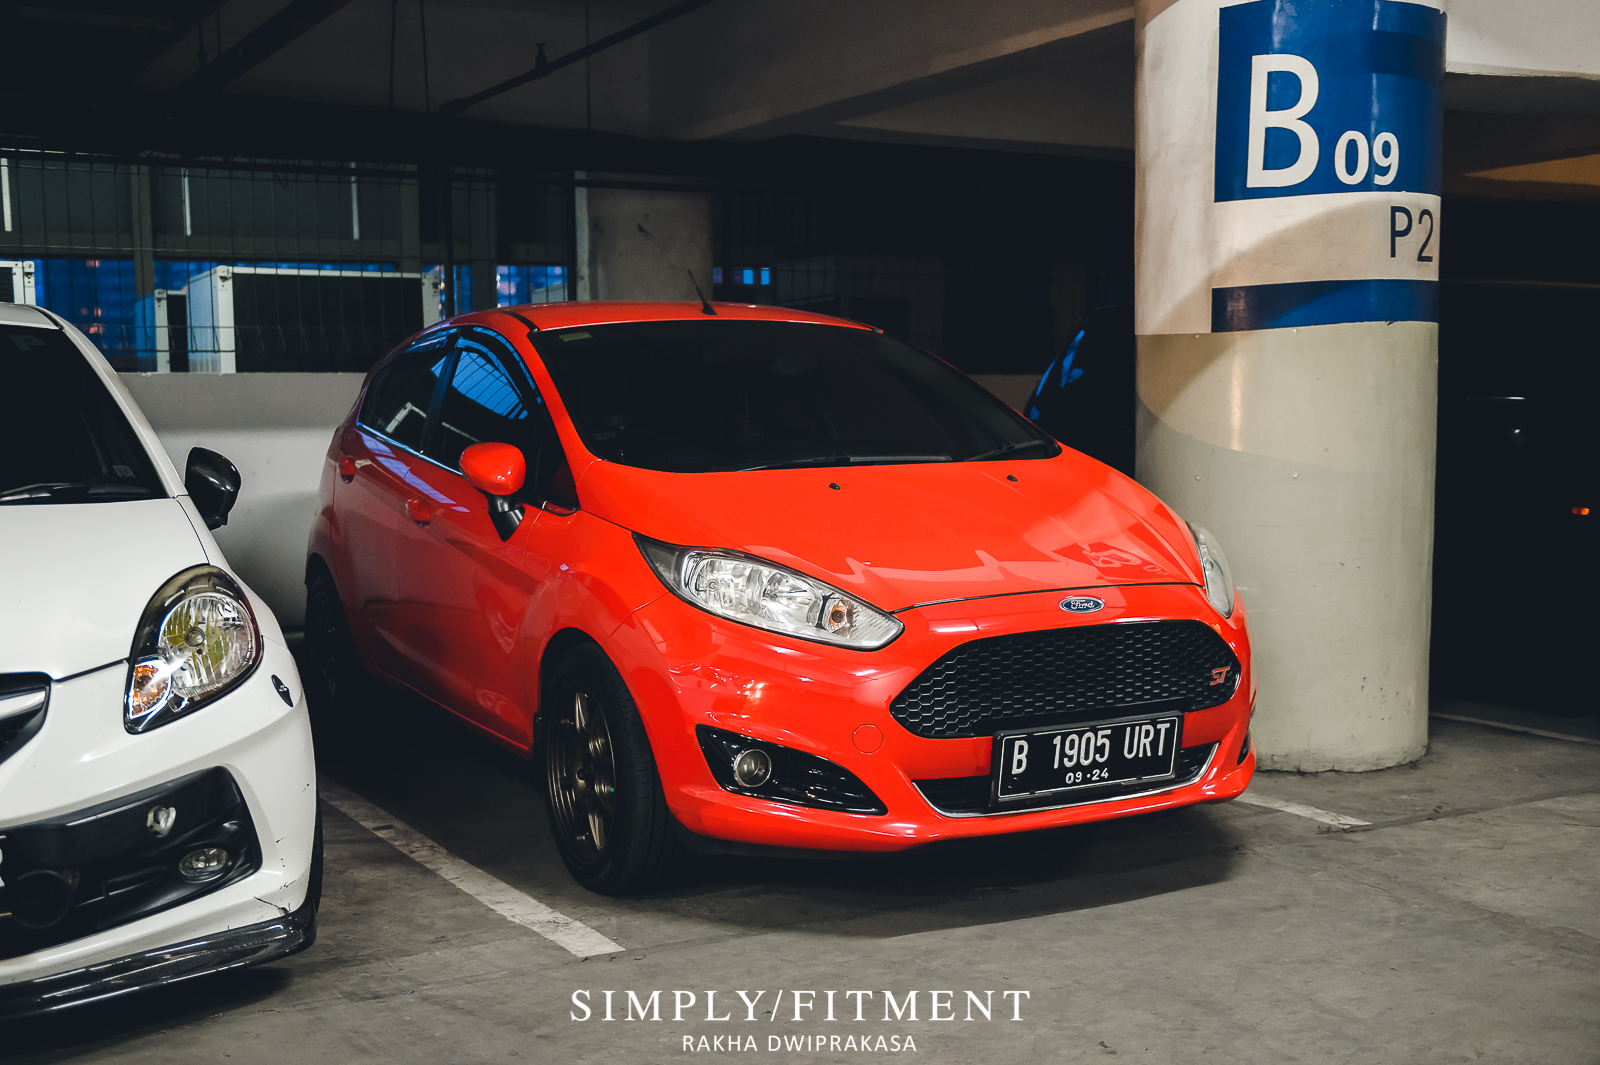 LOWFITMENTDAY 13 DAY 2 - 5 SEPTEMBER 2020